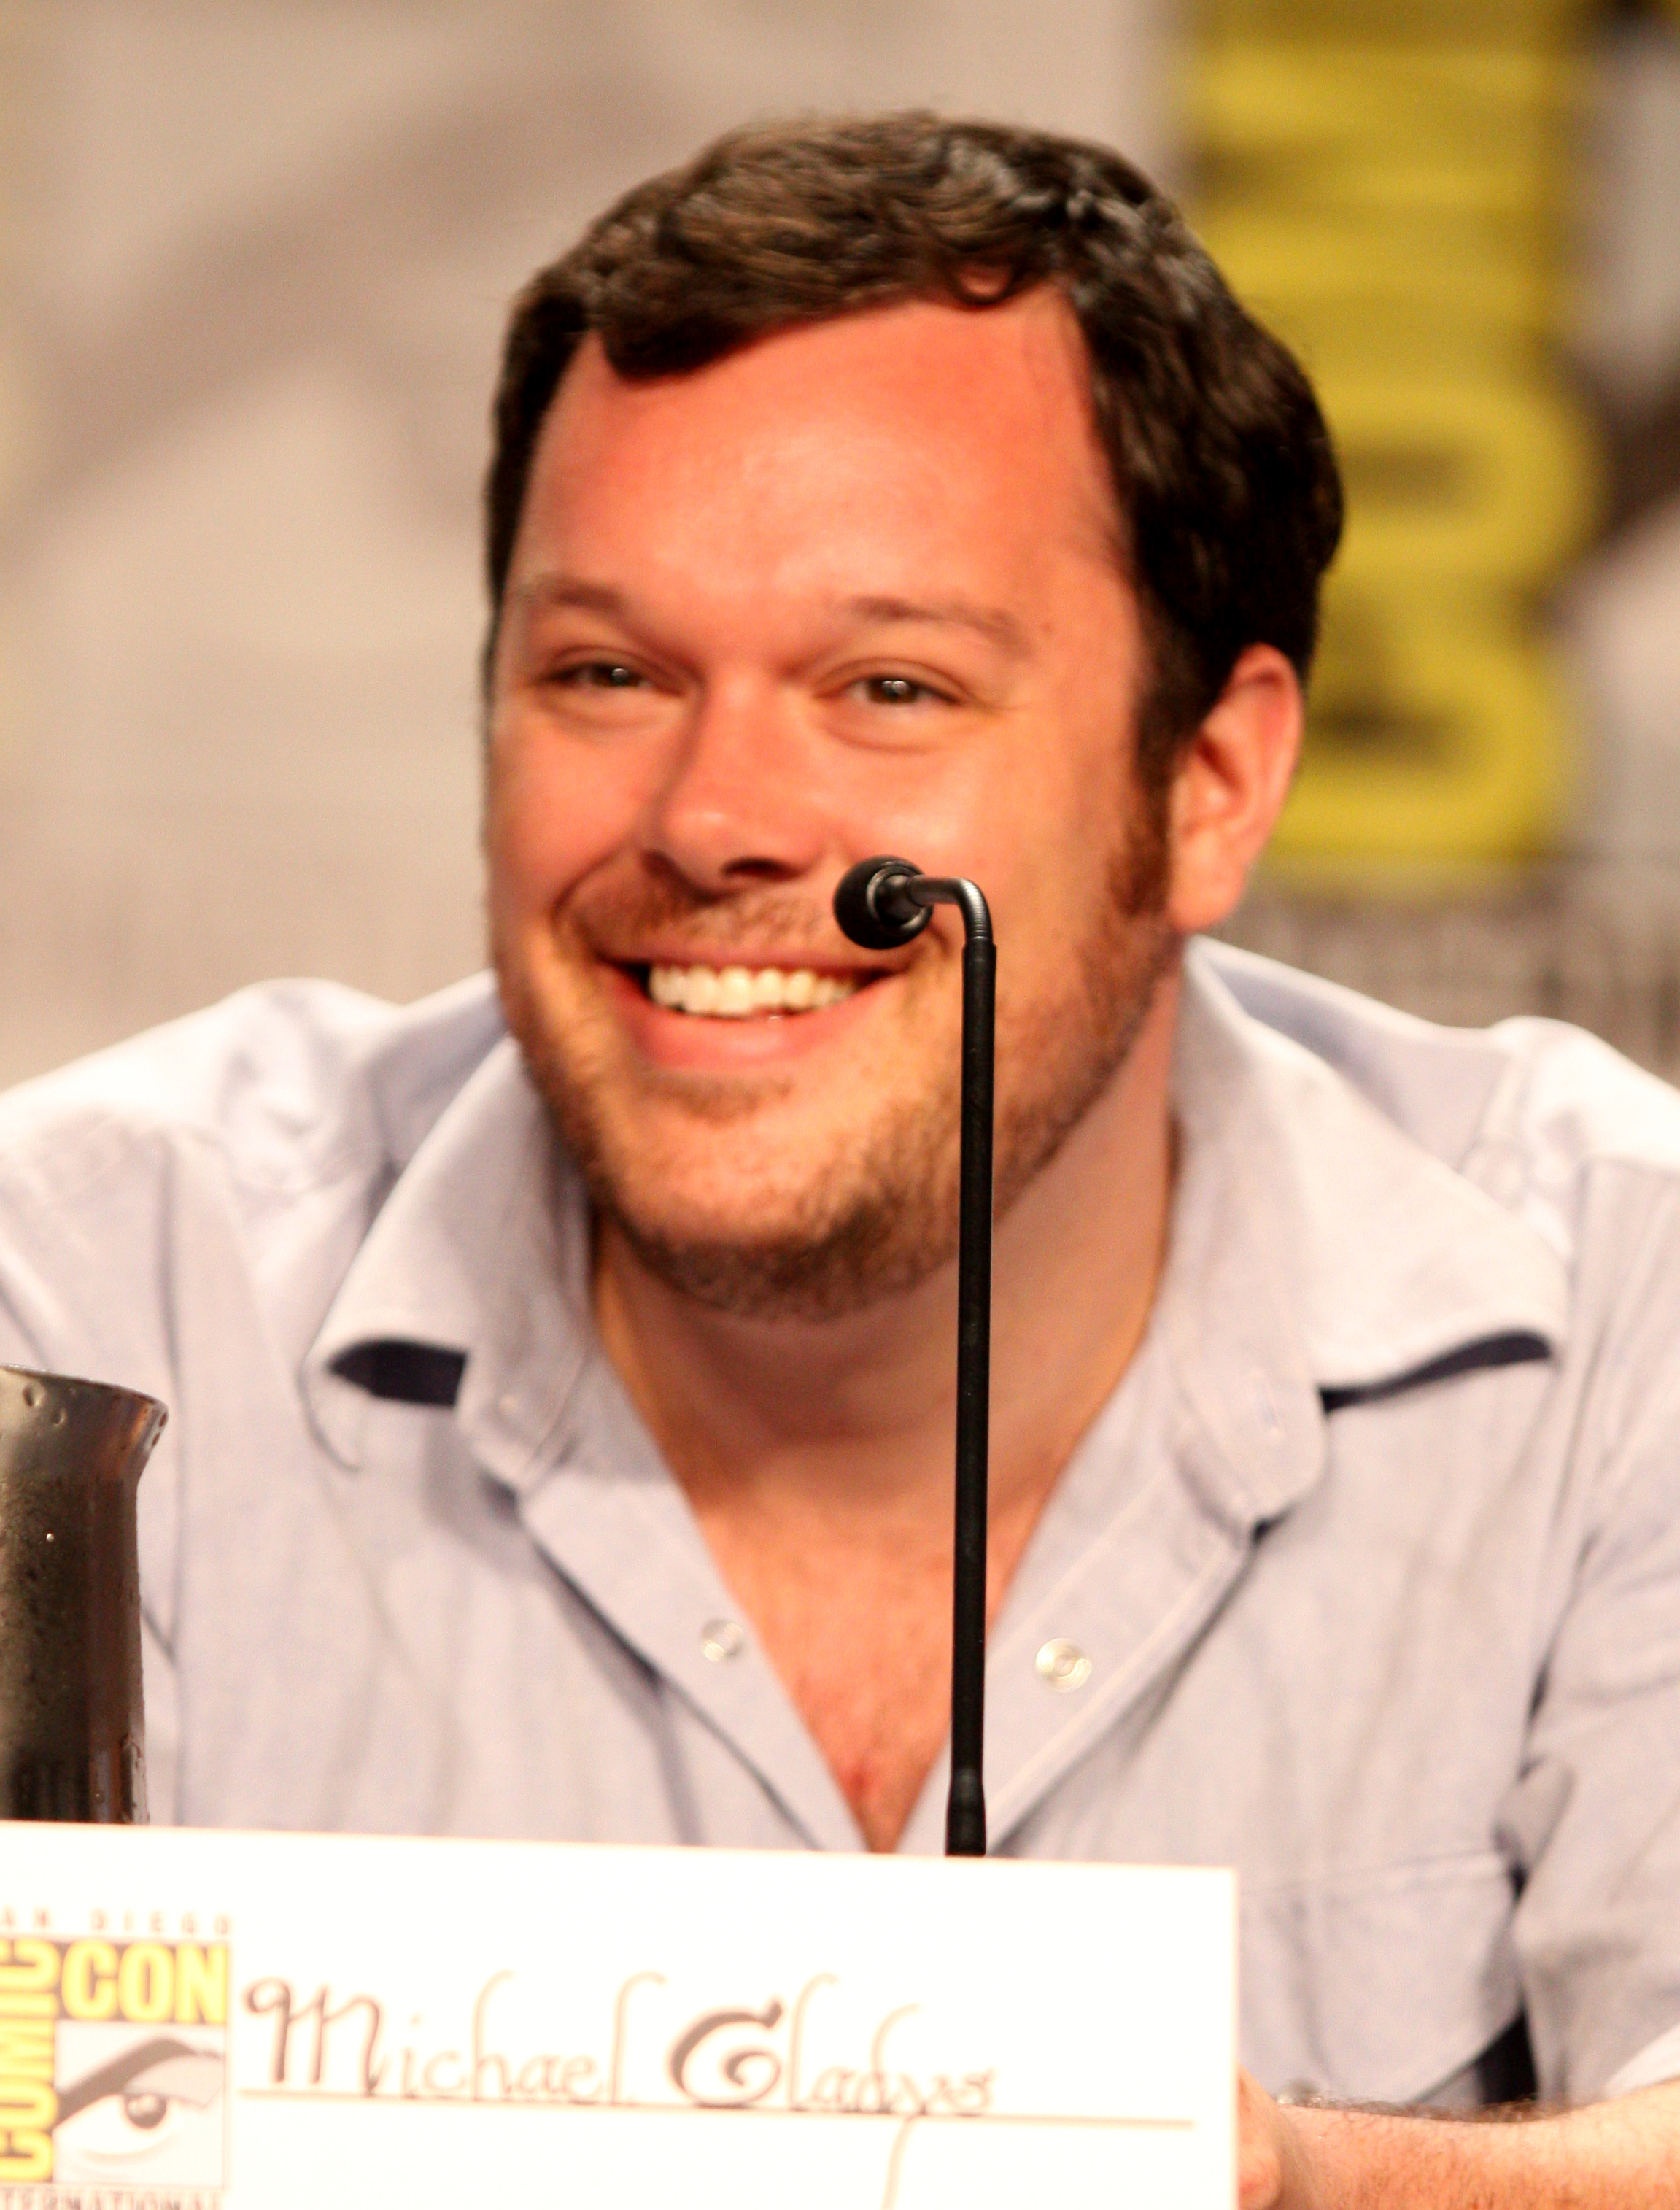 michael gladis how i met your mother